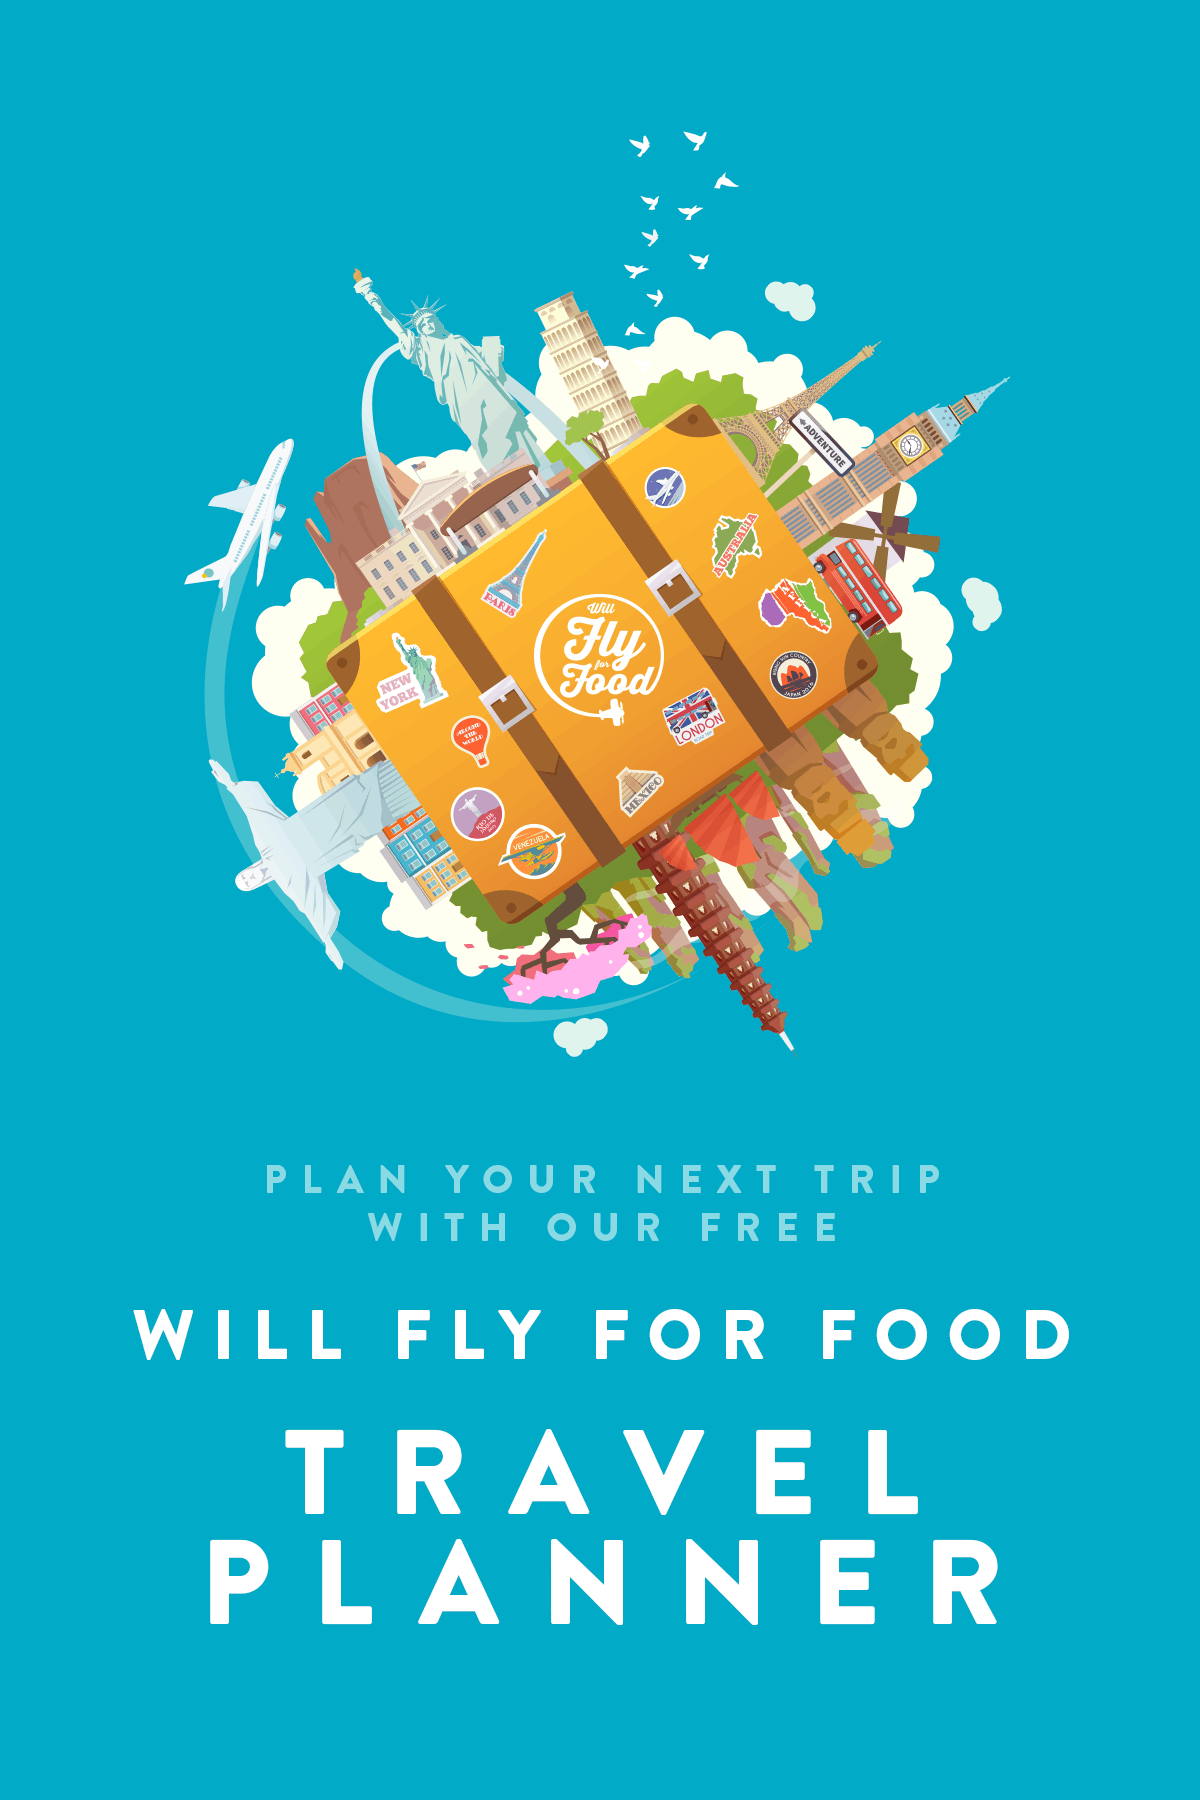 Will Fly for Food travel planner graphic